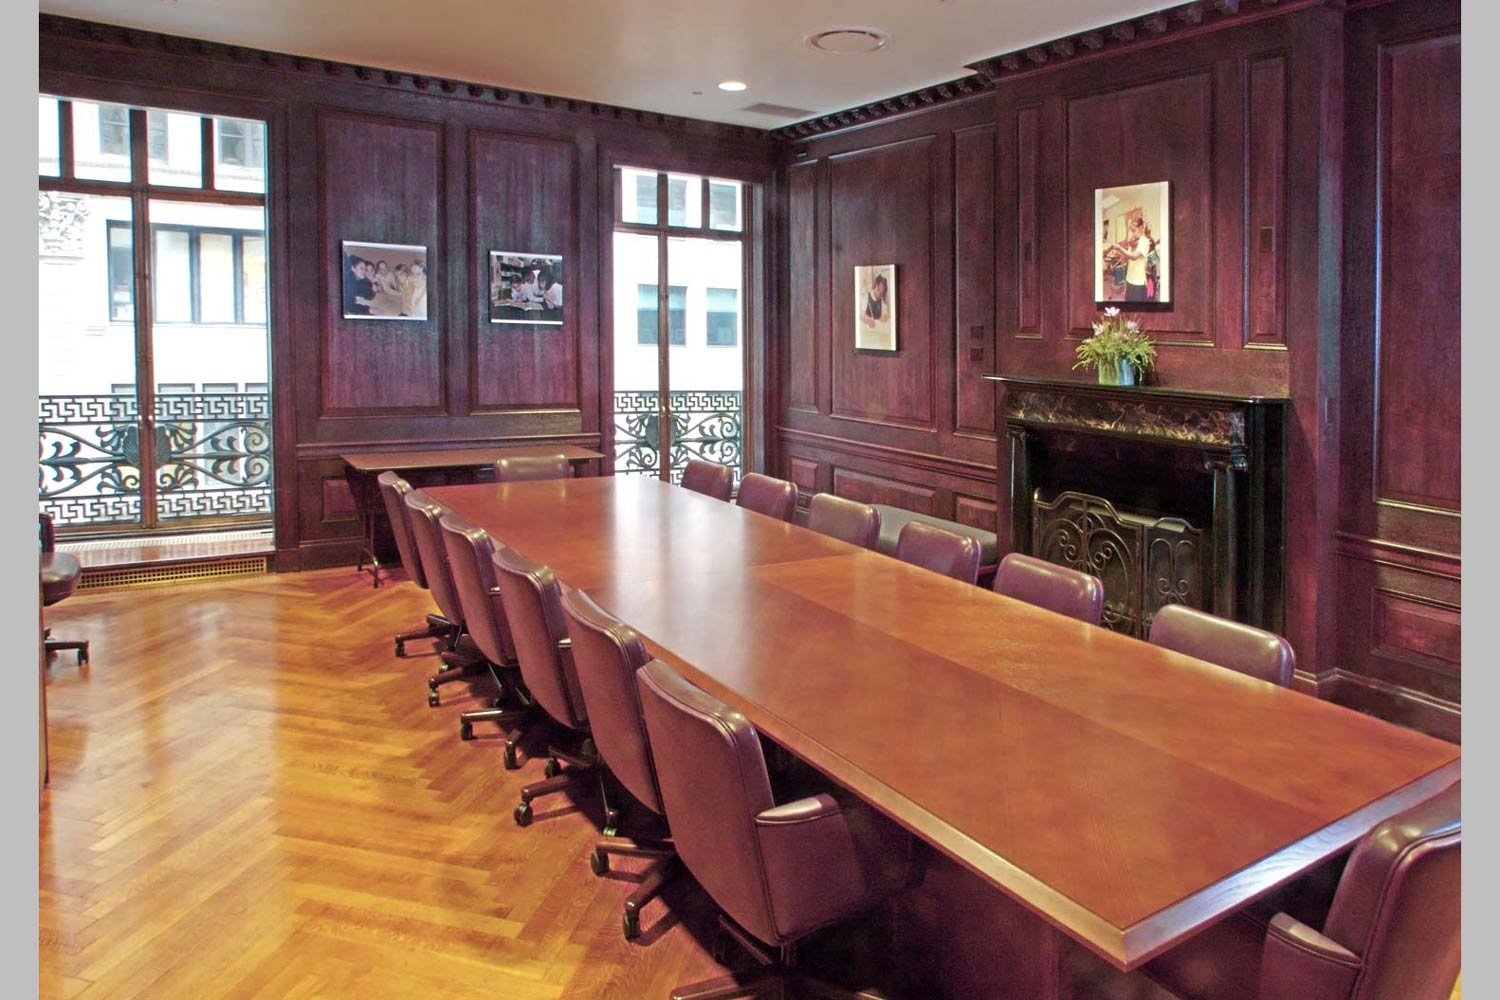 Conference room at the Claremont Prep School in lower Manhattan.